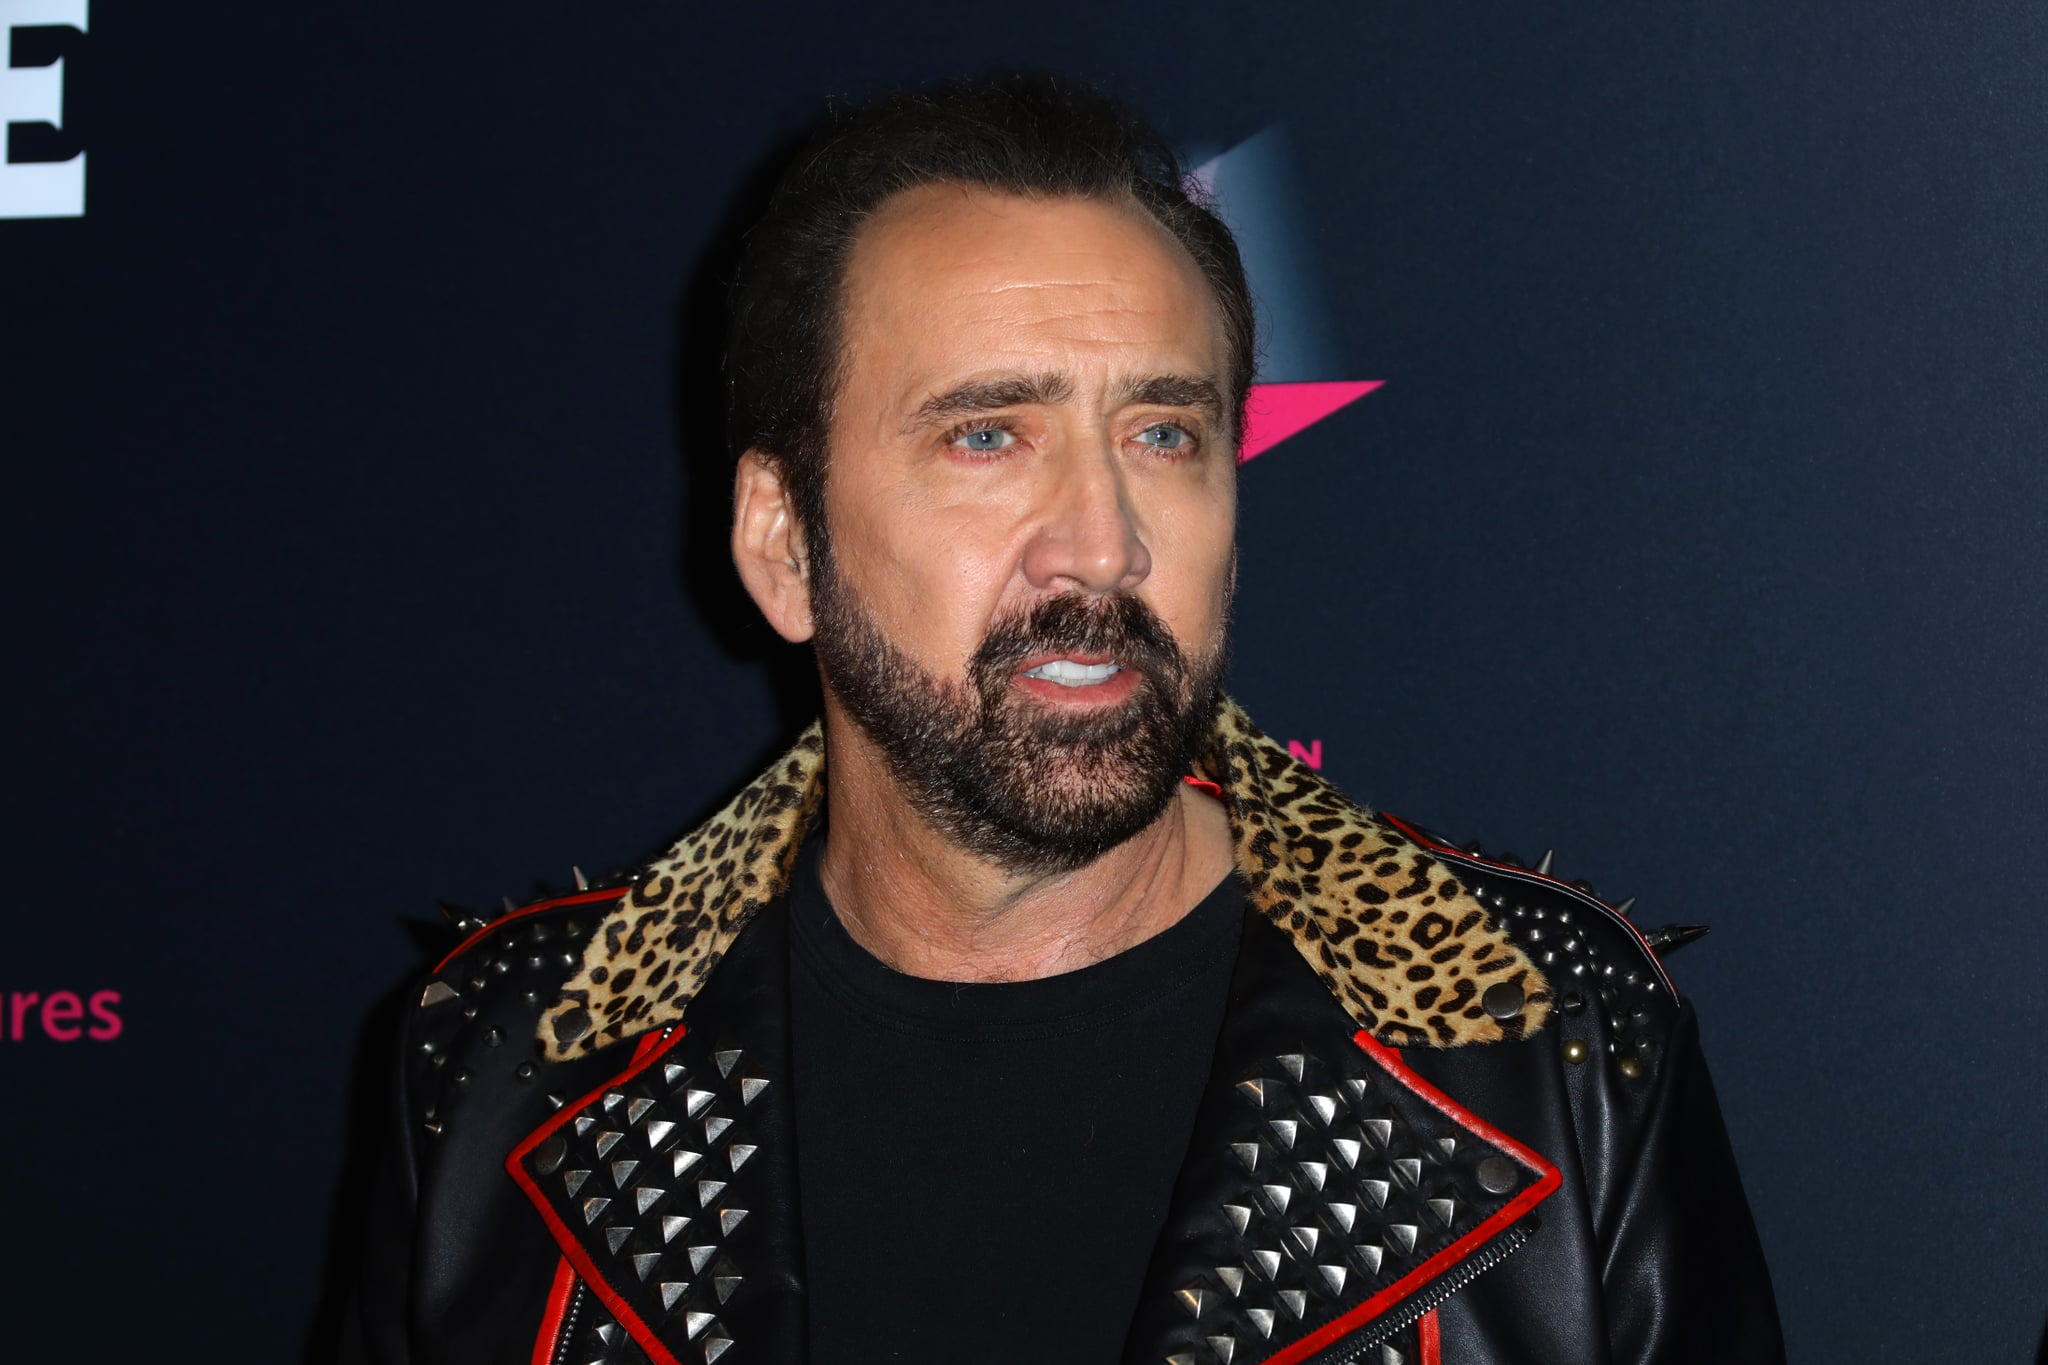 LOS ANGELES, CALIFORNIA - JANUARY 14: Actor Nicolas Cage attends the special screening of